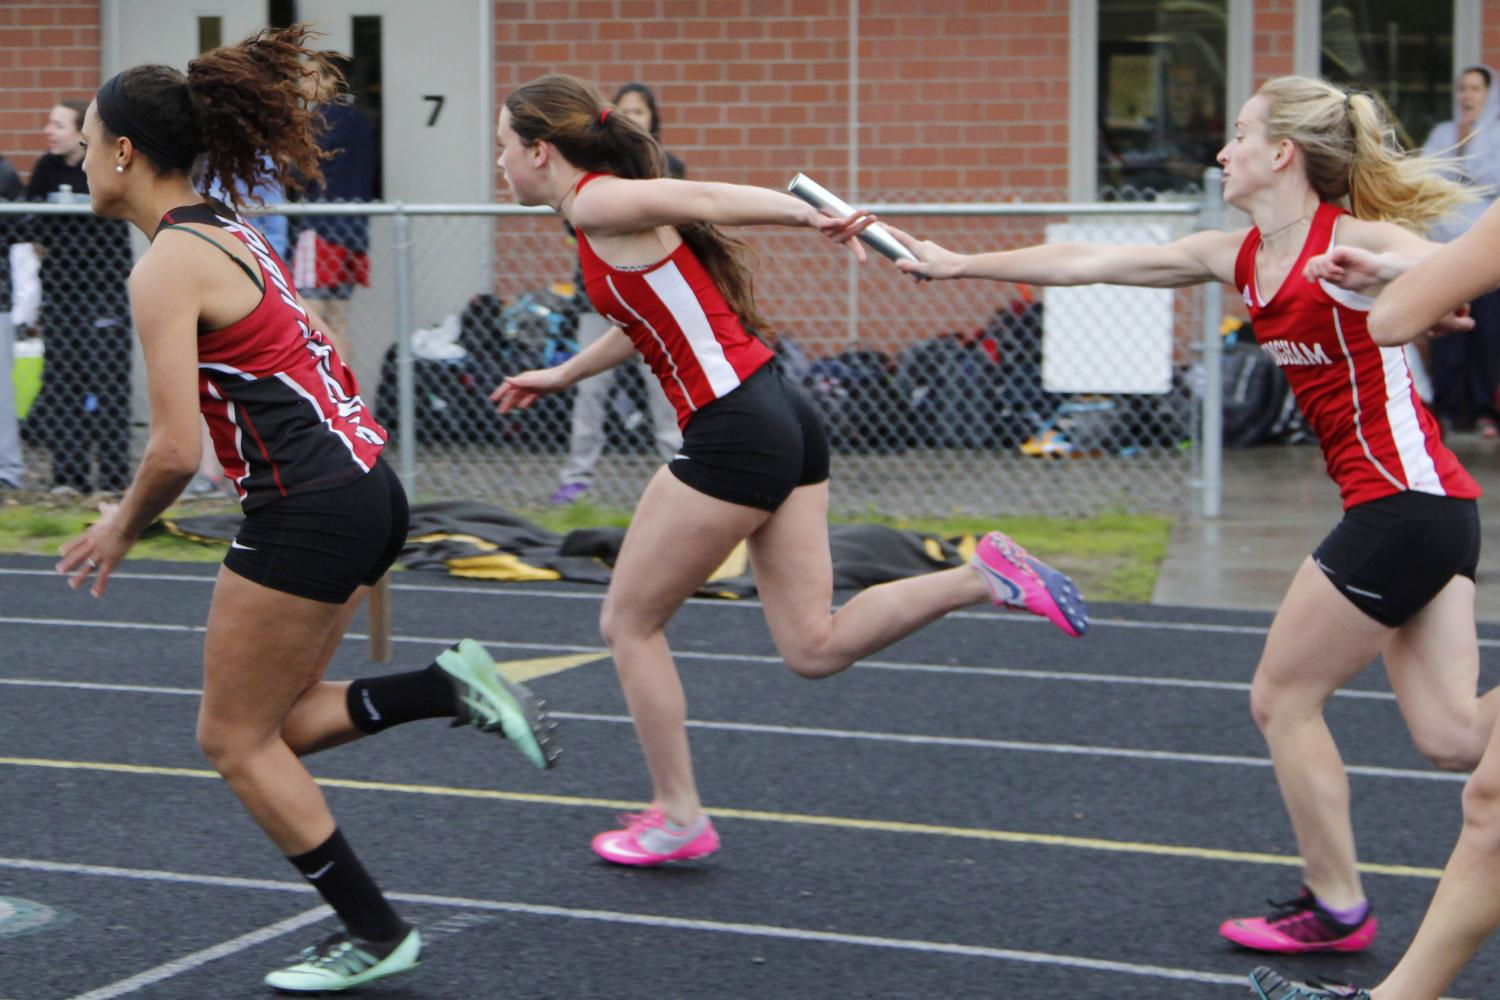 Captain Mary Kate Brennan receives the baton from Emily Brazel in the 4x100m relay.